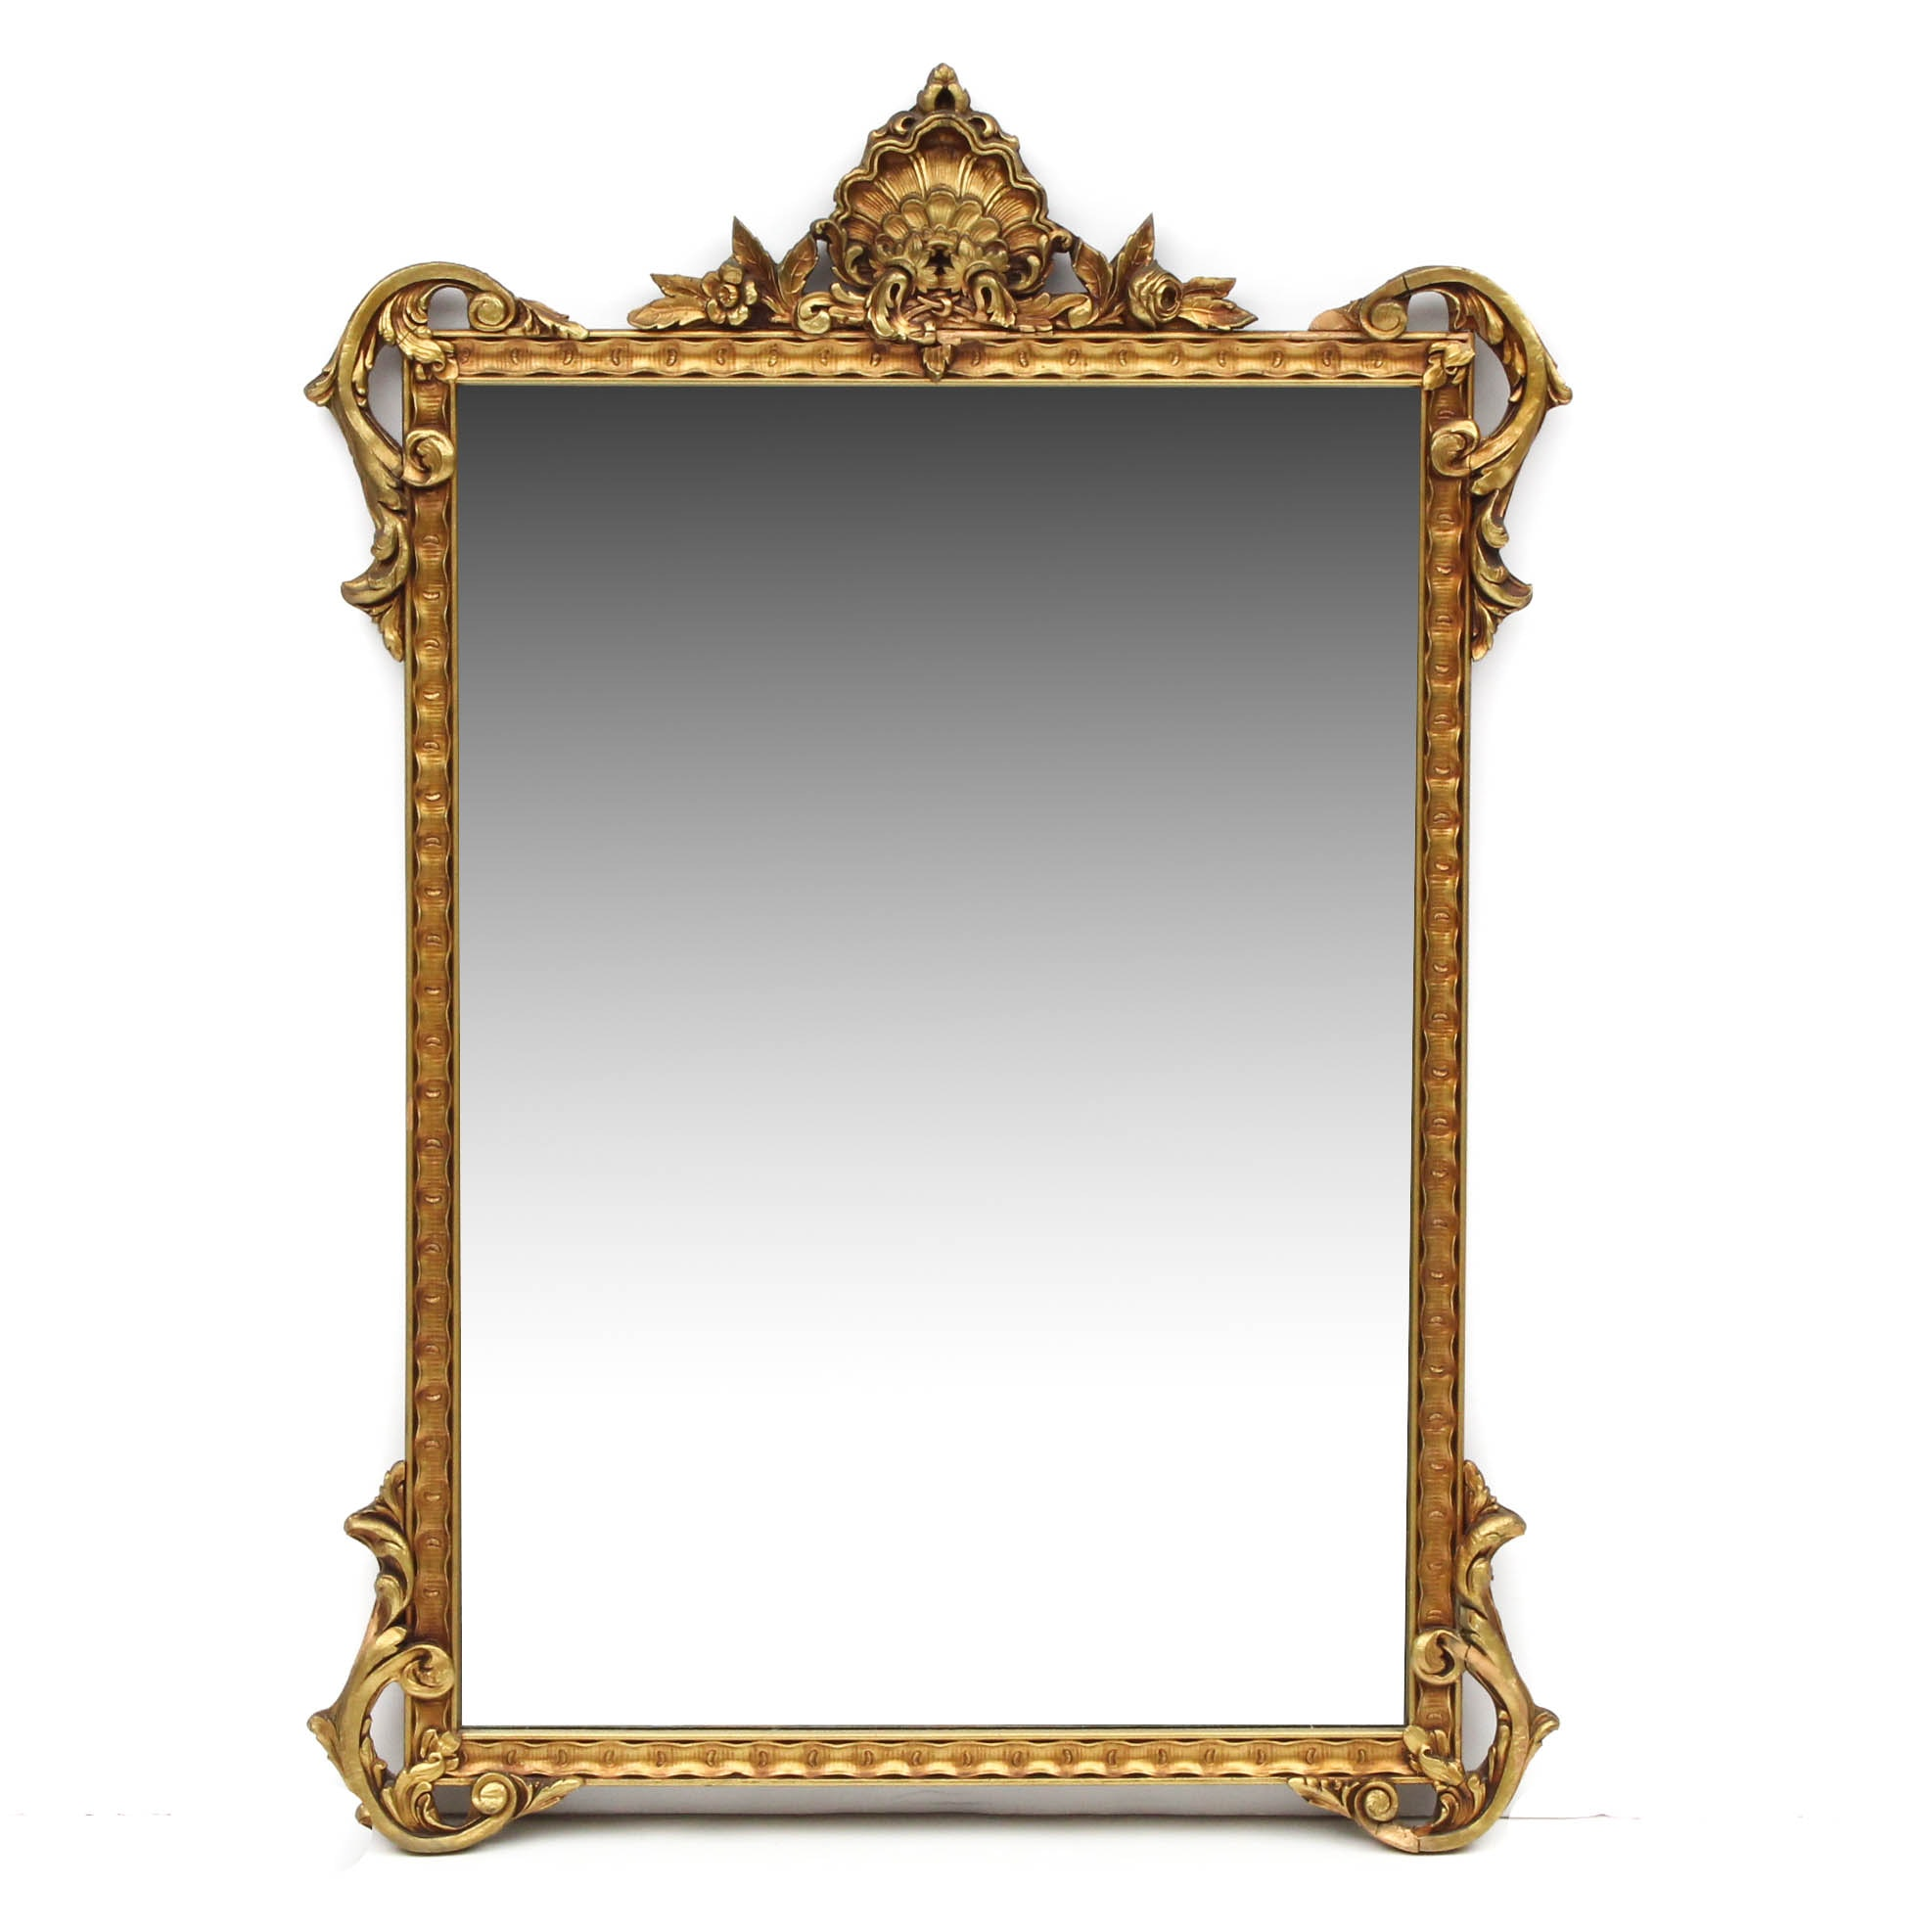 Ornate Wood and Gesso Wall Mirror